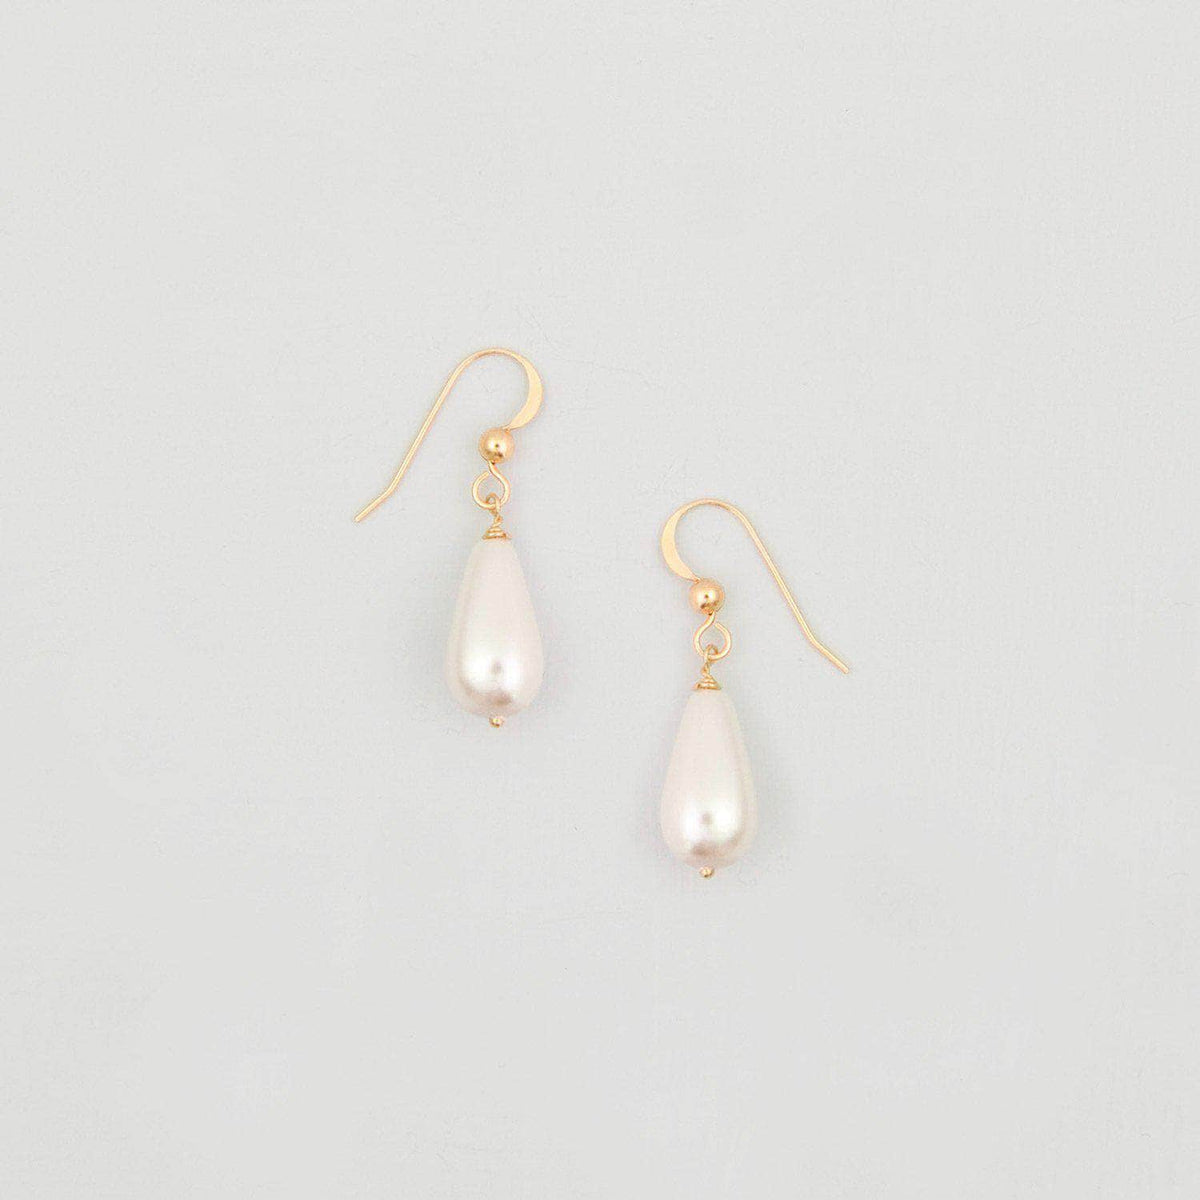 Wedding Earring Pearl wedding earrings gold (different sizes available) - 'Hermi'